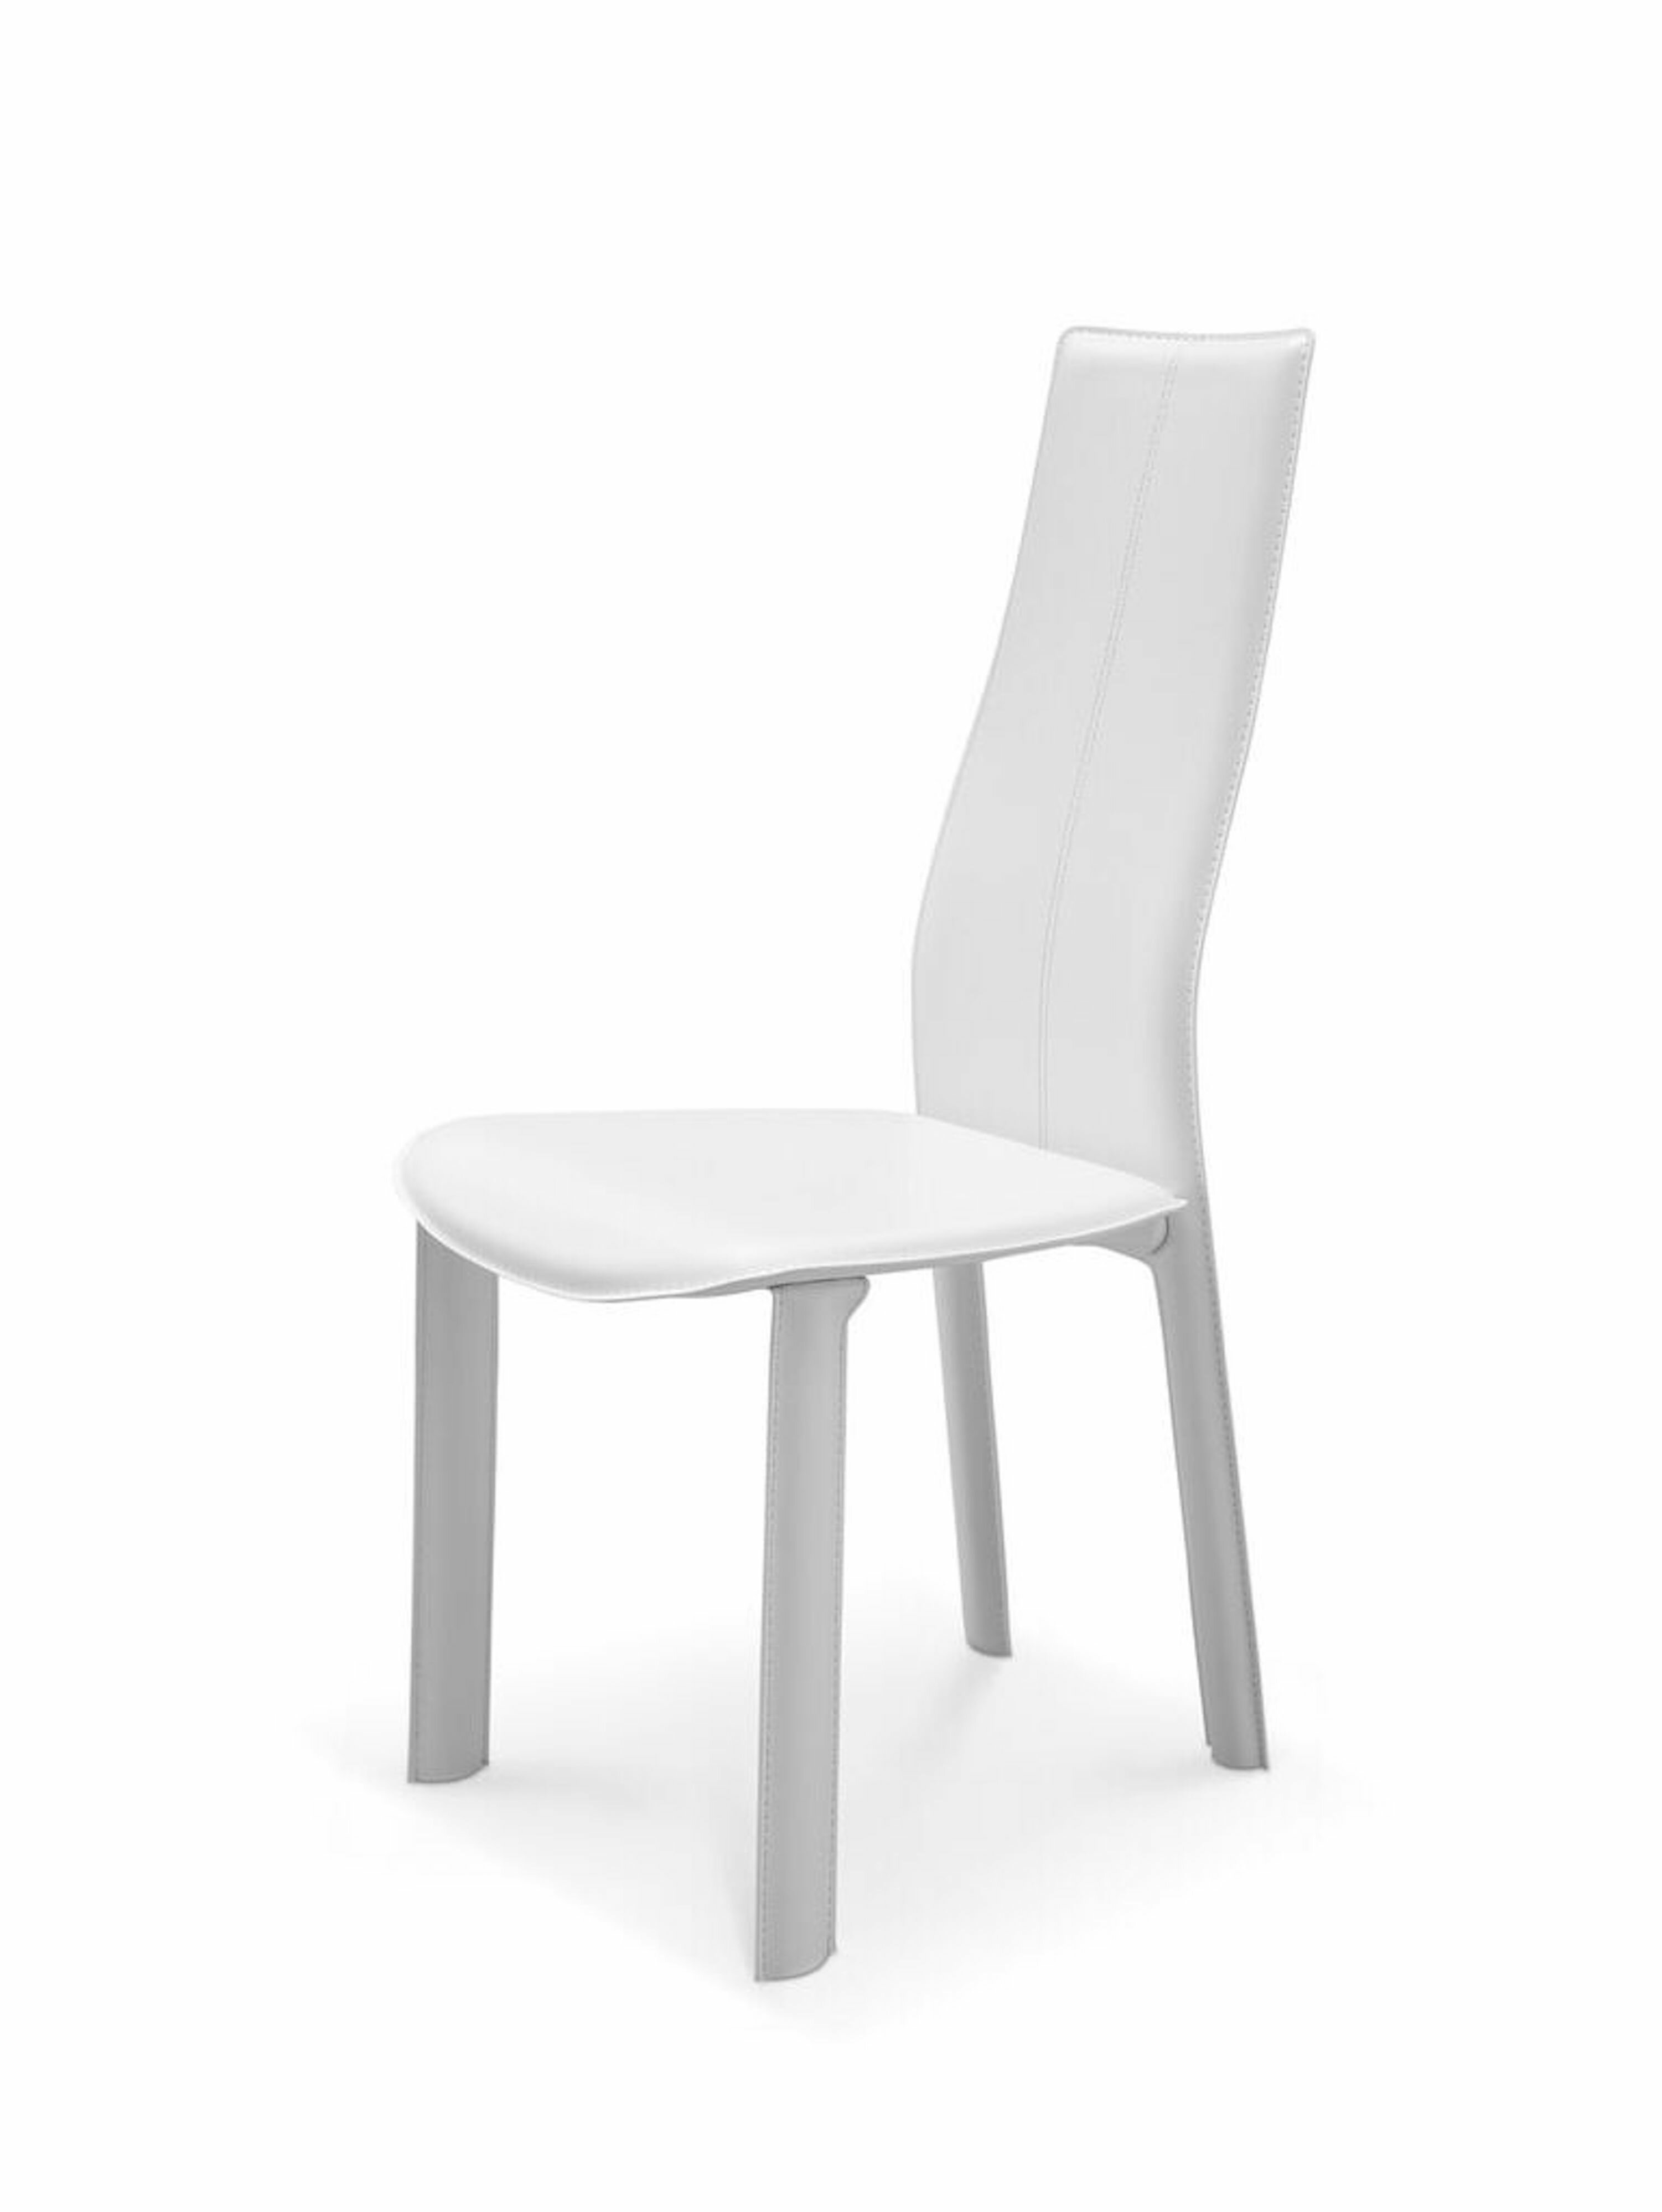 Strange Allison Genuine Leather Upholstered Dining Chair Gmtry Best Dining Table And Chair Ideas Images Gmtryco